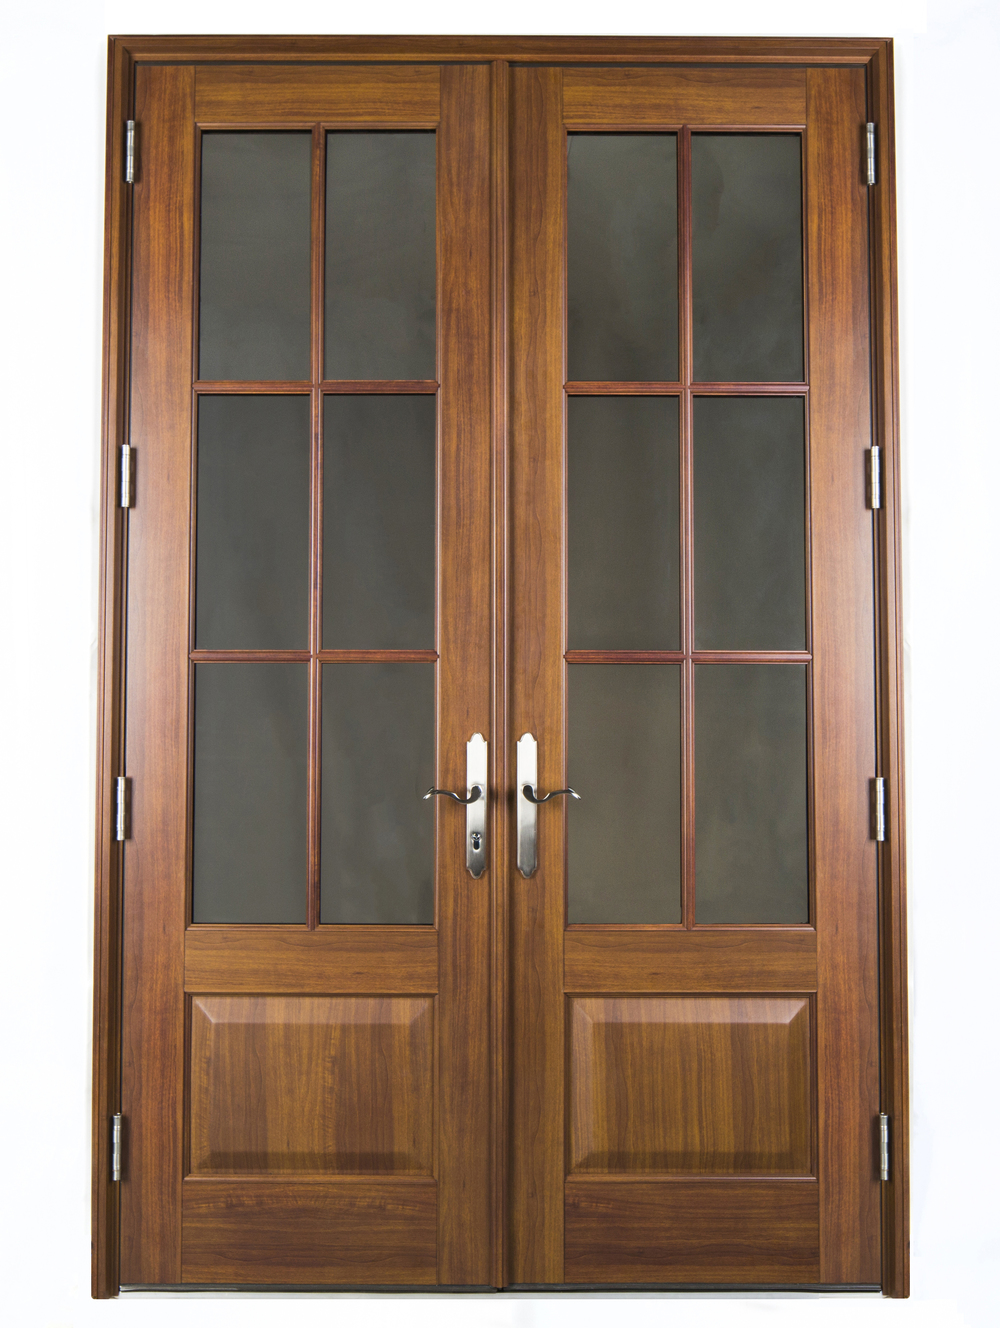 Beau Ultimate Door Of Palm Beach Inc. Is A Locally Owned And Operated Company  With Corporate Headquarters And Manufacturing In Lake Worth, Florida Since  1994.